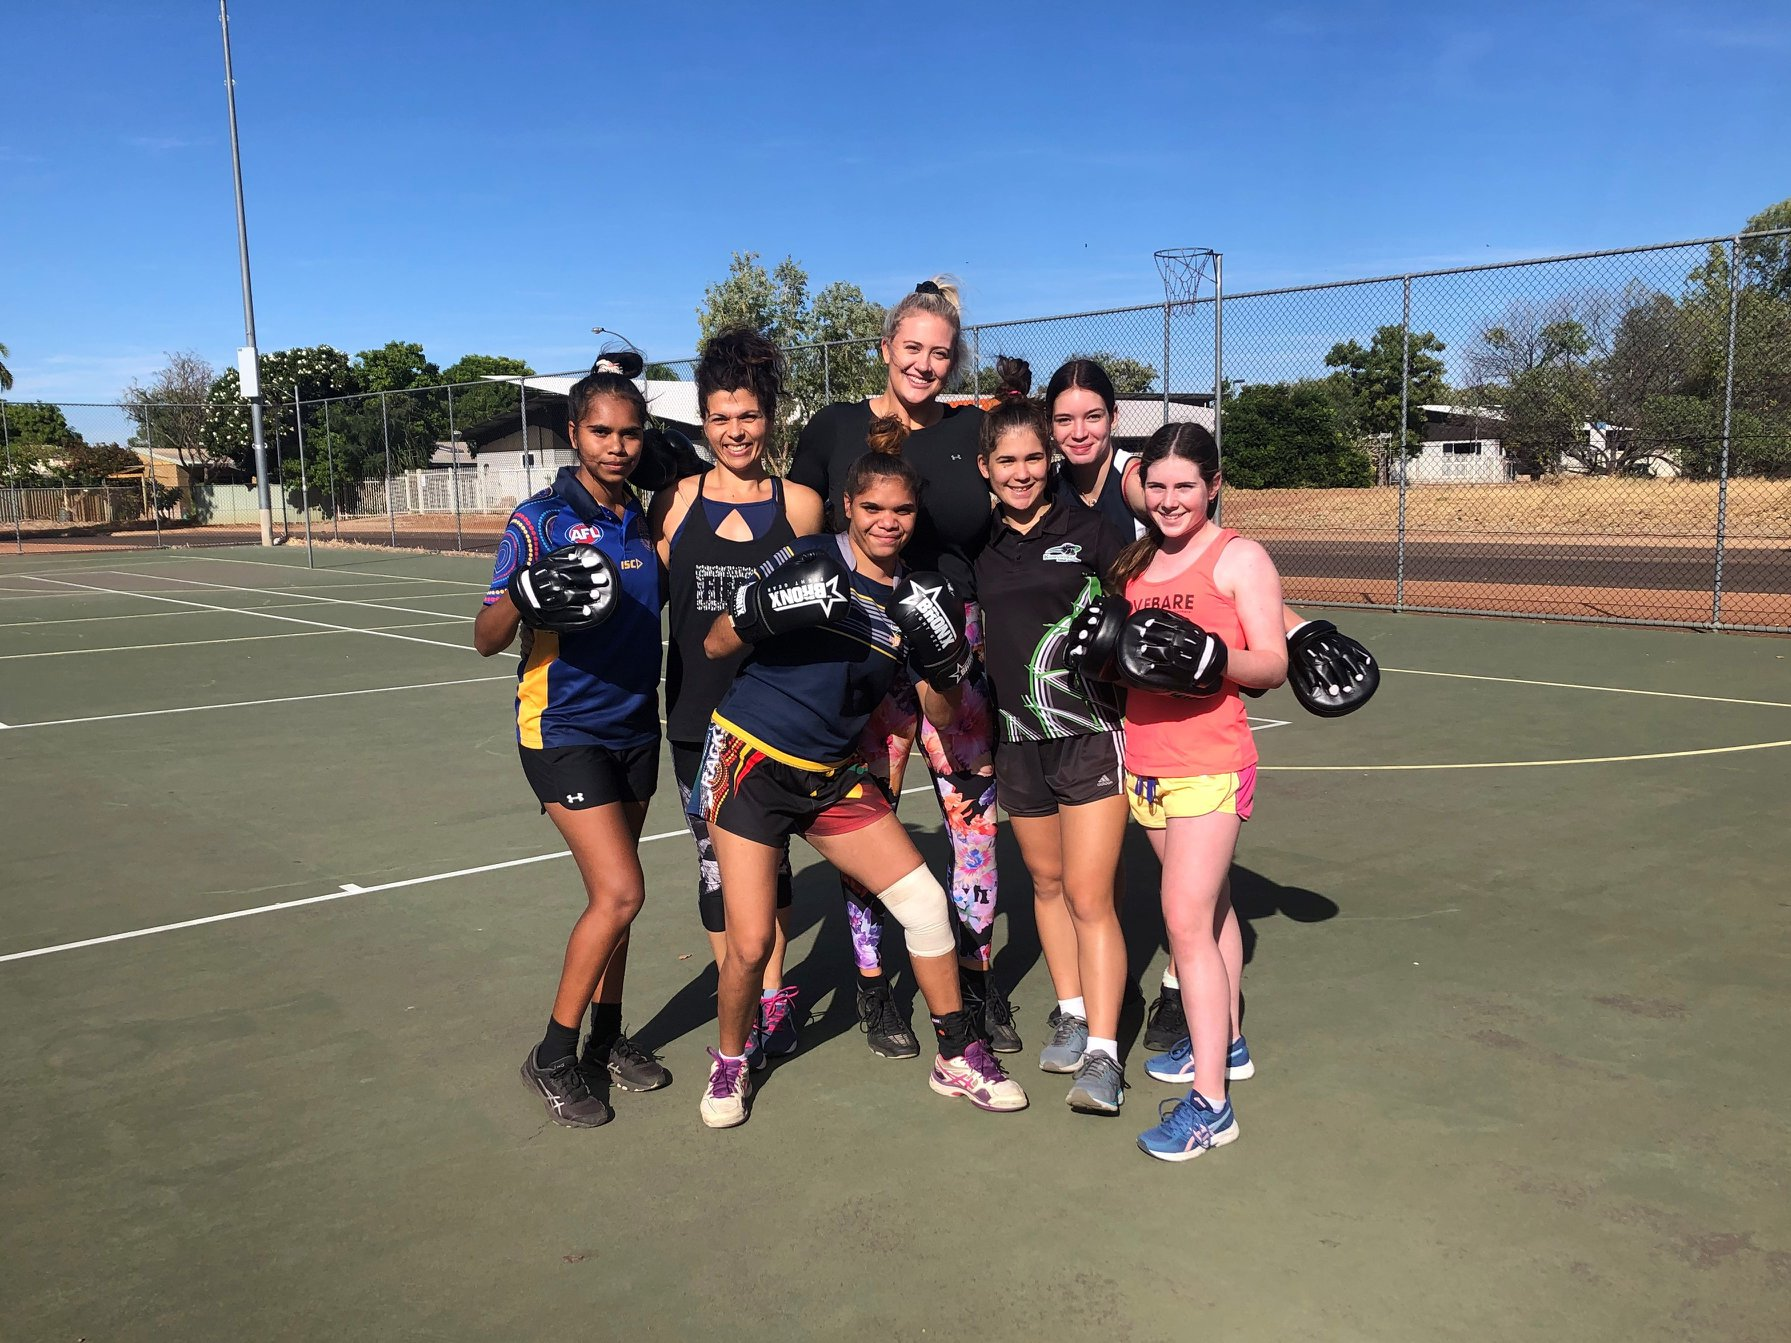 Girls from Kununurra Netball Association travelling to Broome